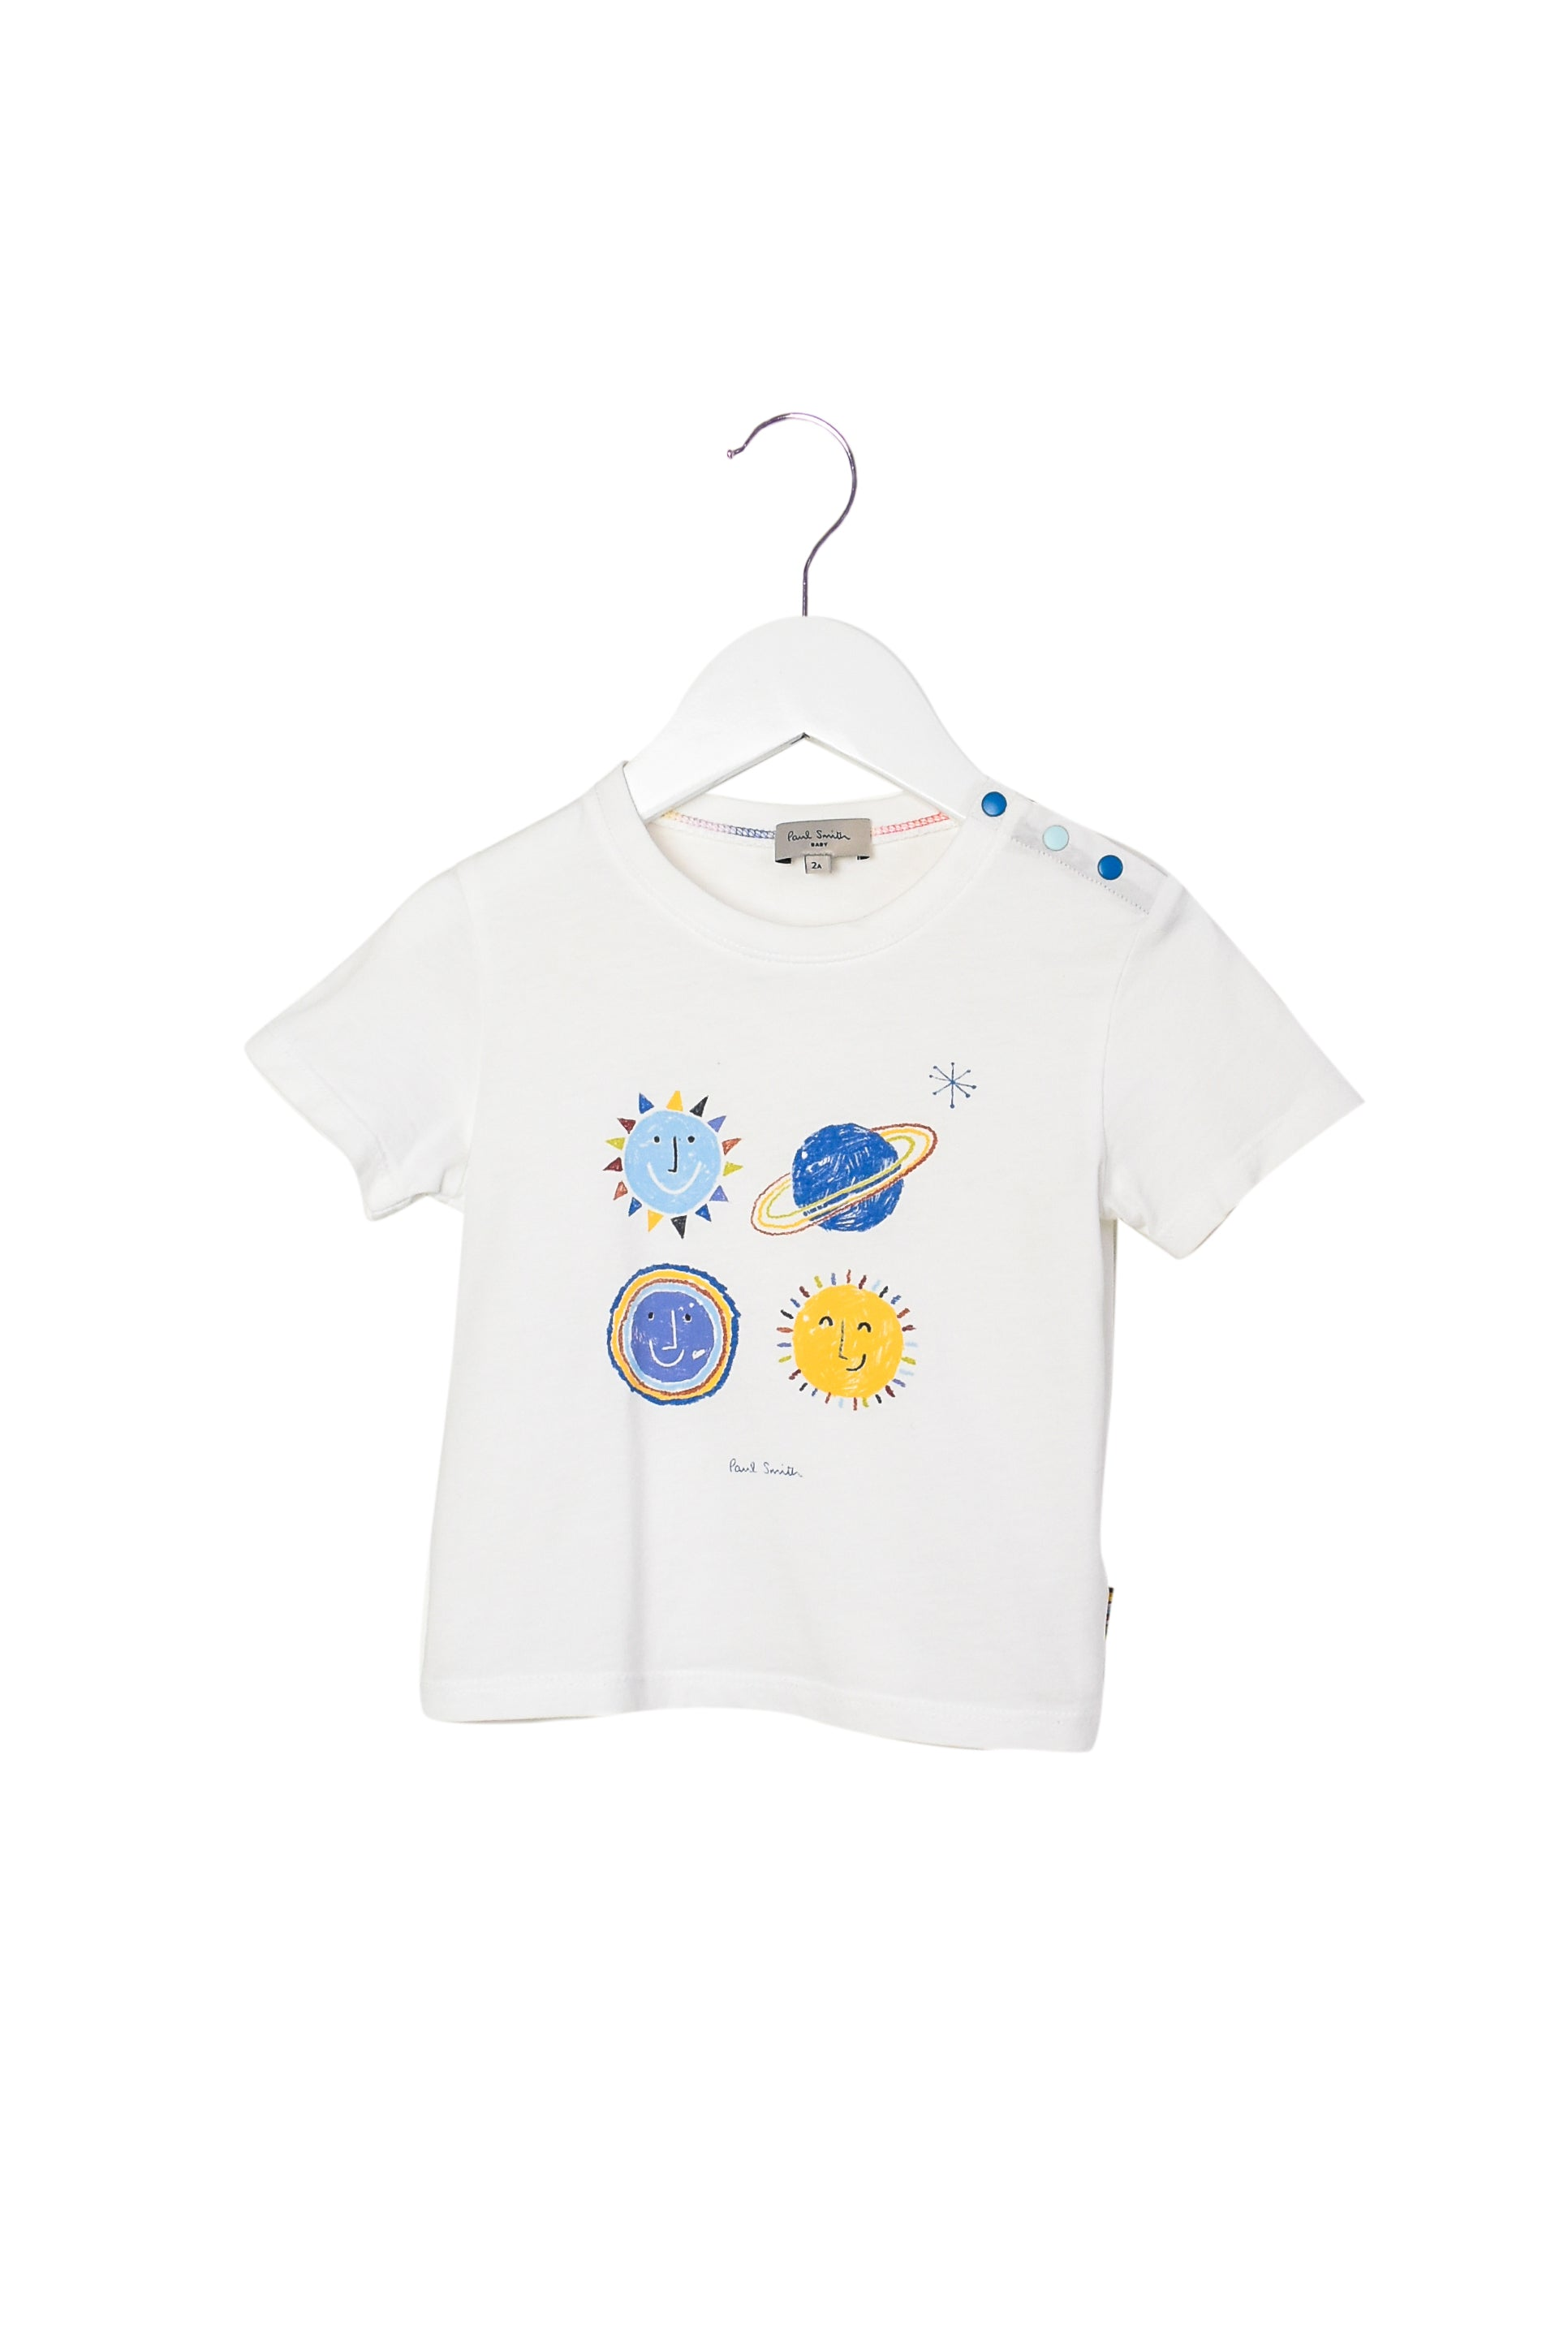 10008238 Paul Smith Kids~ T-Shirt 2T at Retykle